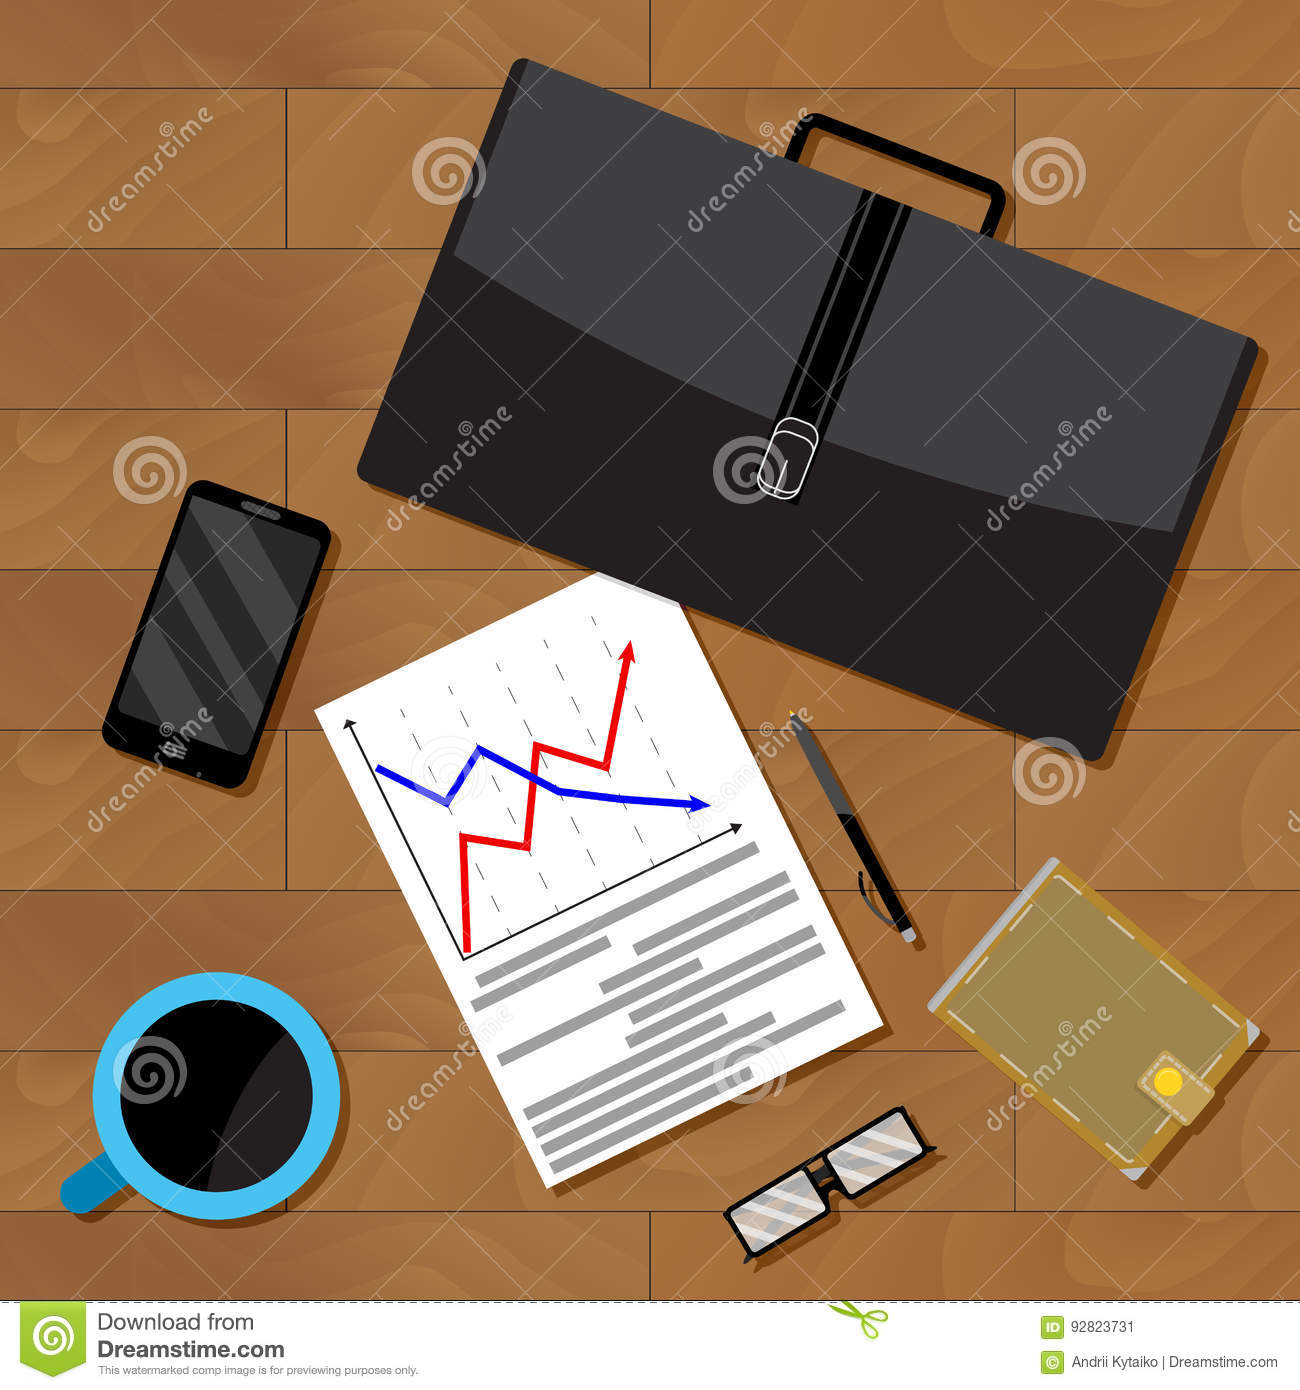 Economist Jobs Data Analysis Cartoon Vector